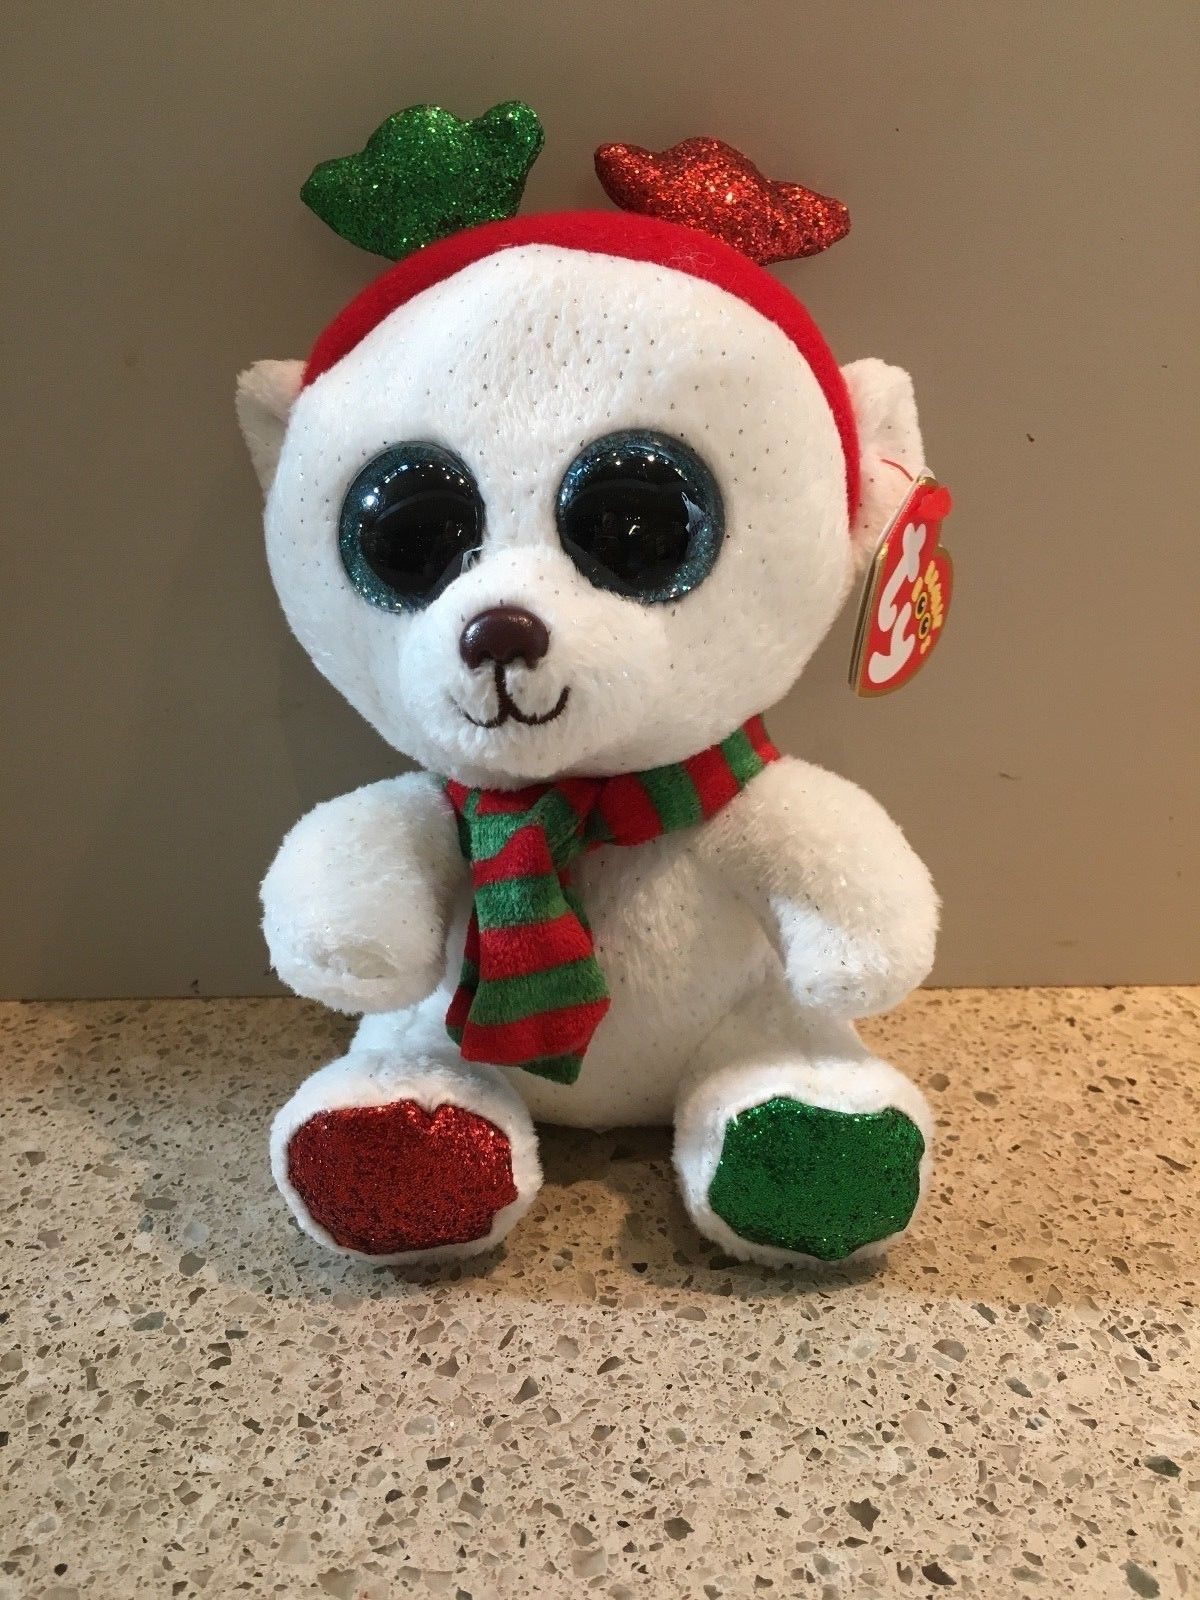 77cd96f138e Ty 19203  Ty Beanie Boo Frost The Polar Bear 6 Claire S Exclusive Mwmts -   BUY IT NOW ONLY   13.99 on  eBay  beanie  frost  polar  claire  exclusive   mwmts